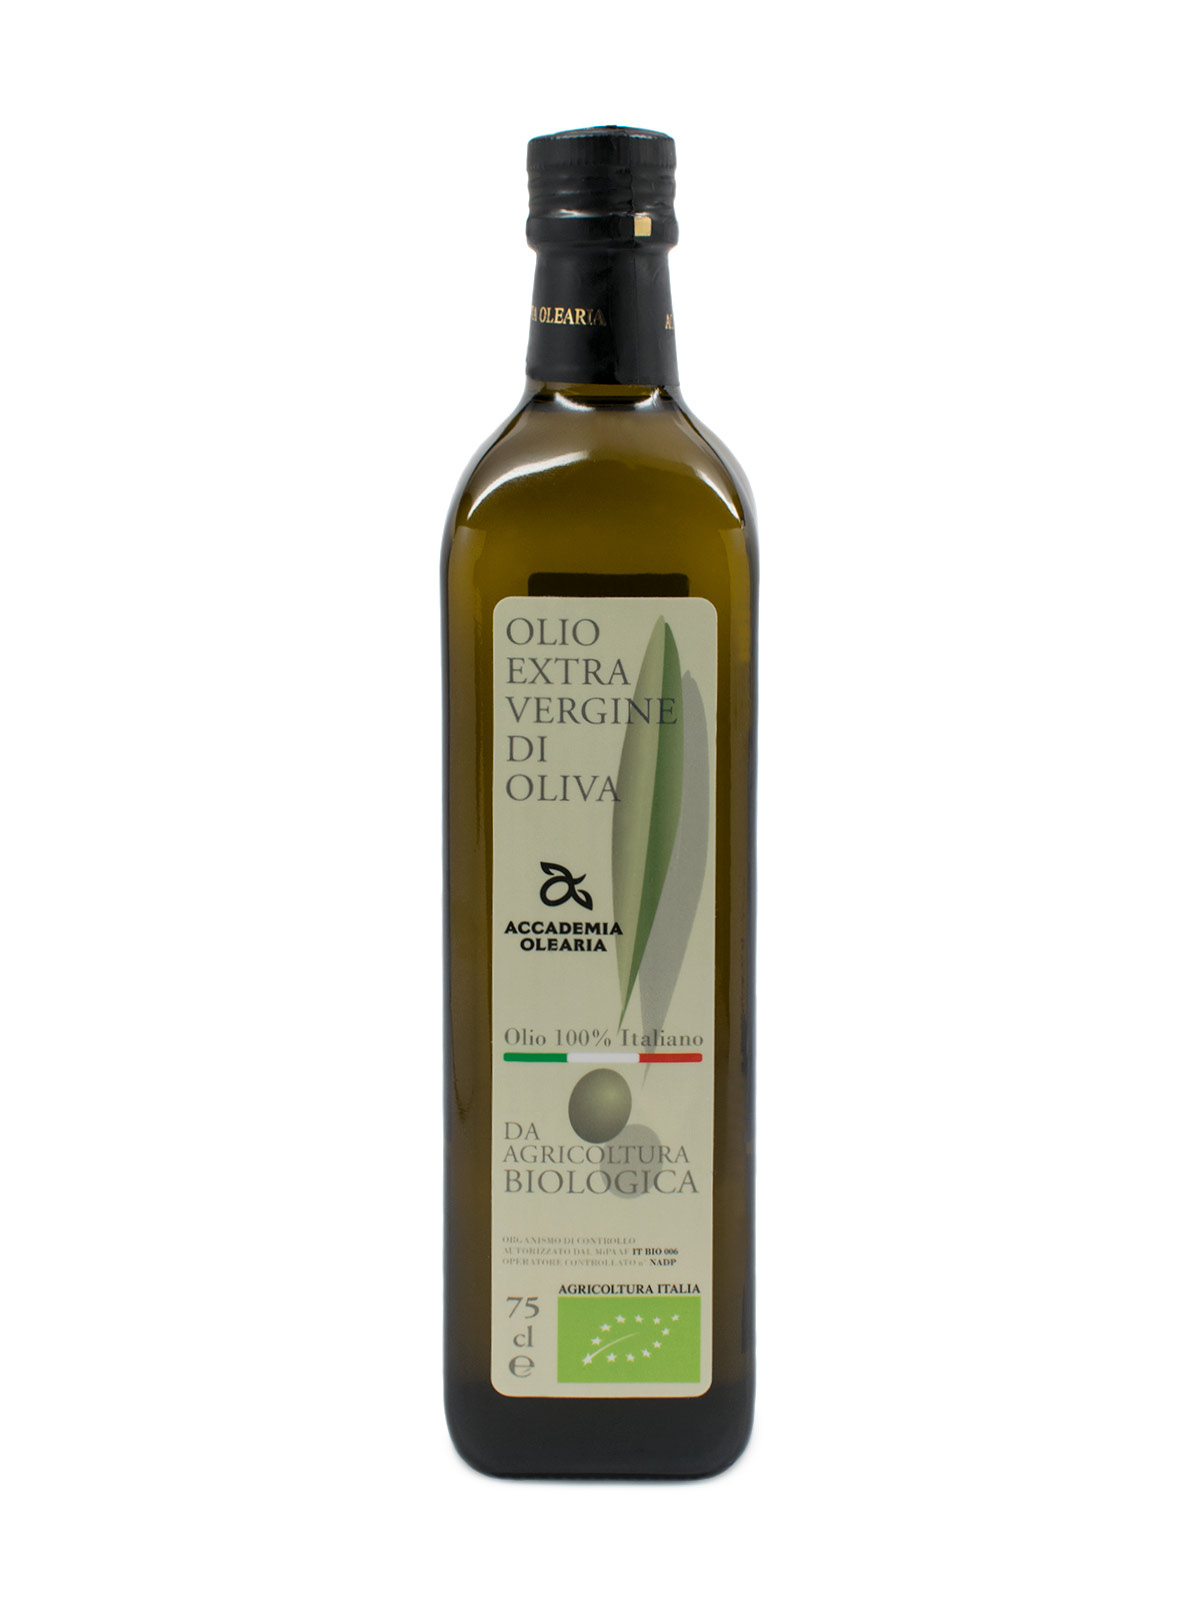 Da Agricoltura Biologico Extra Virgin Olive Oil - Oils & Vinegars - Buon'Italia